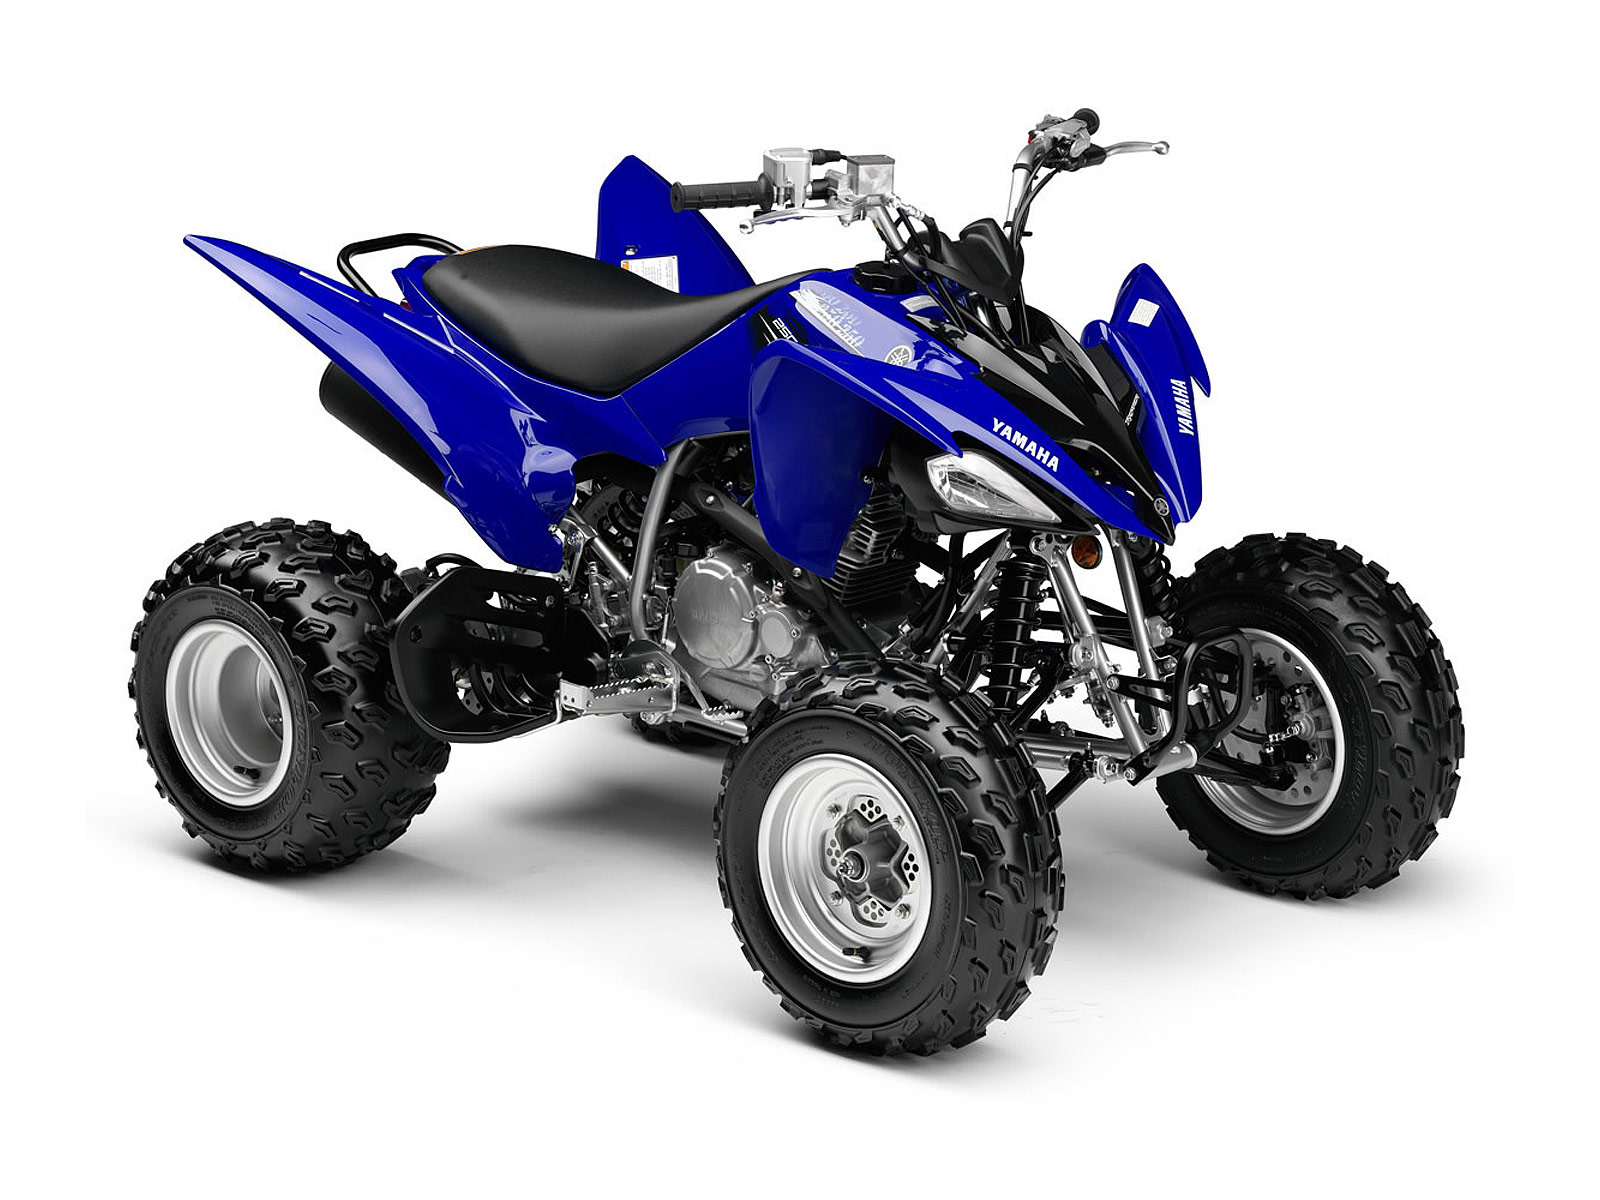 2012 yamaha raptor 250 atv pictures review specifications for Yamaha raptor 250 price